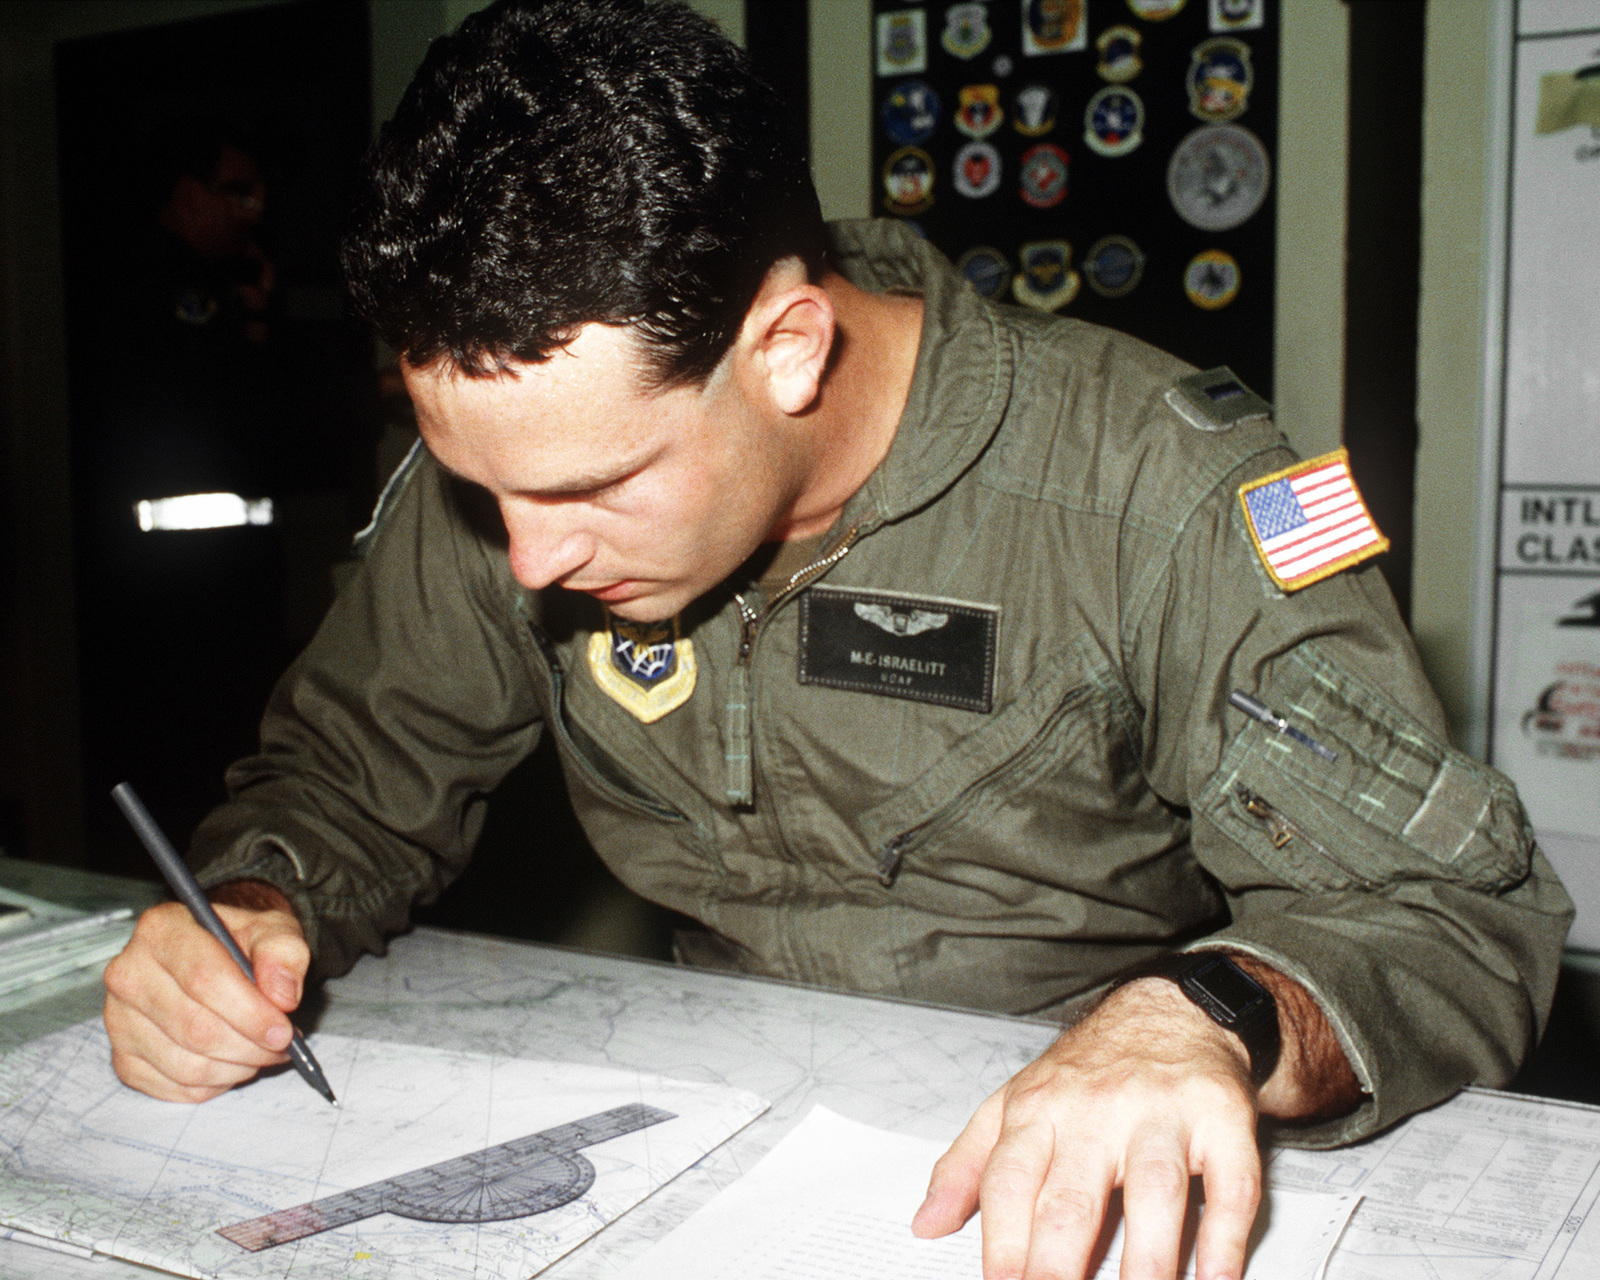 1LT Mark Israelitt, a navigator with the 53rd Weather Reconnaissance Squadron, plans the course that his WC-130H Hercules aircraft will take across the Gulf of Mexico as it travels into Hurricane Gilbert to gather meteorological data